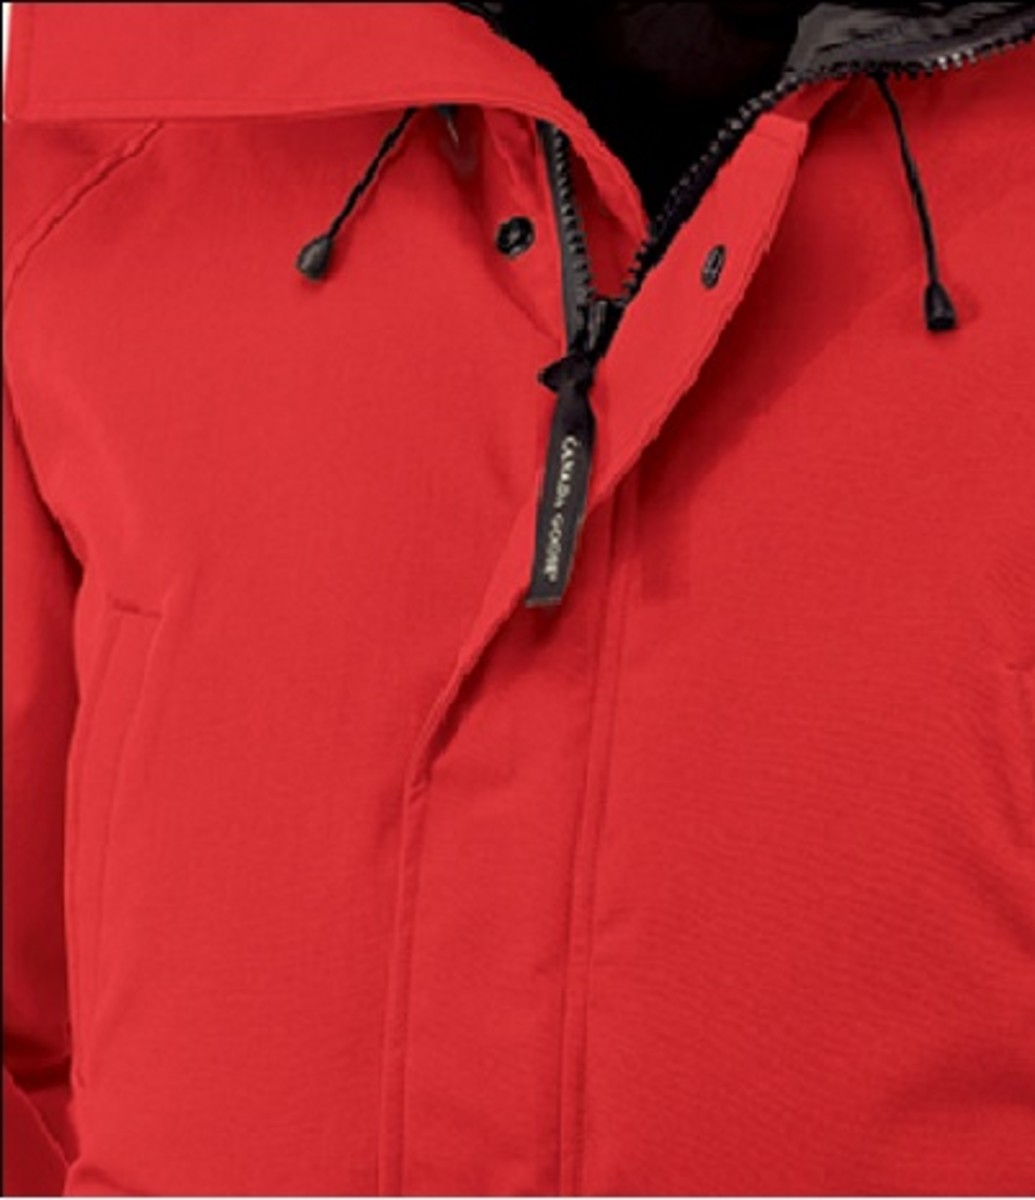 Storm flap that covers buttons and coil zipper